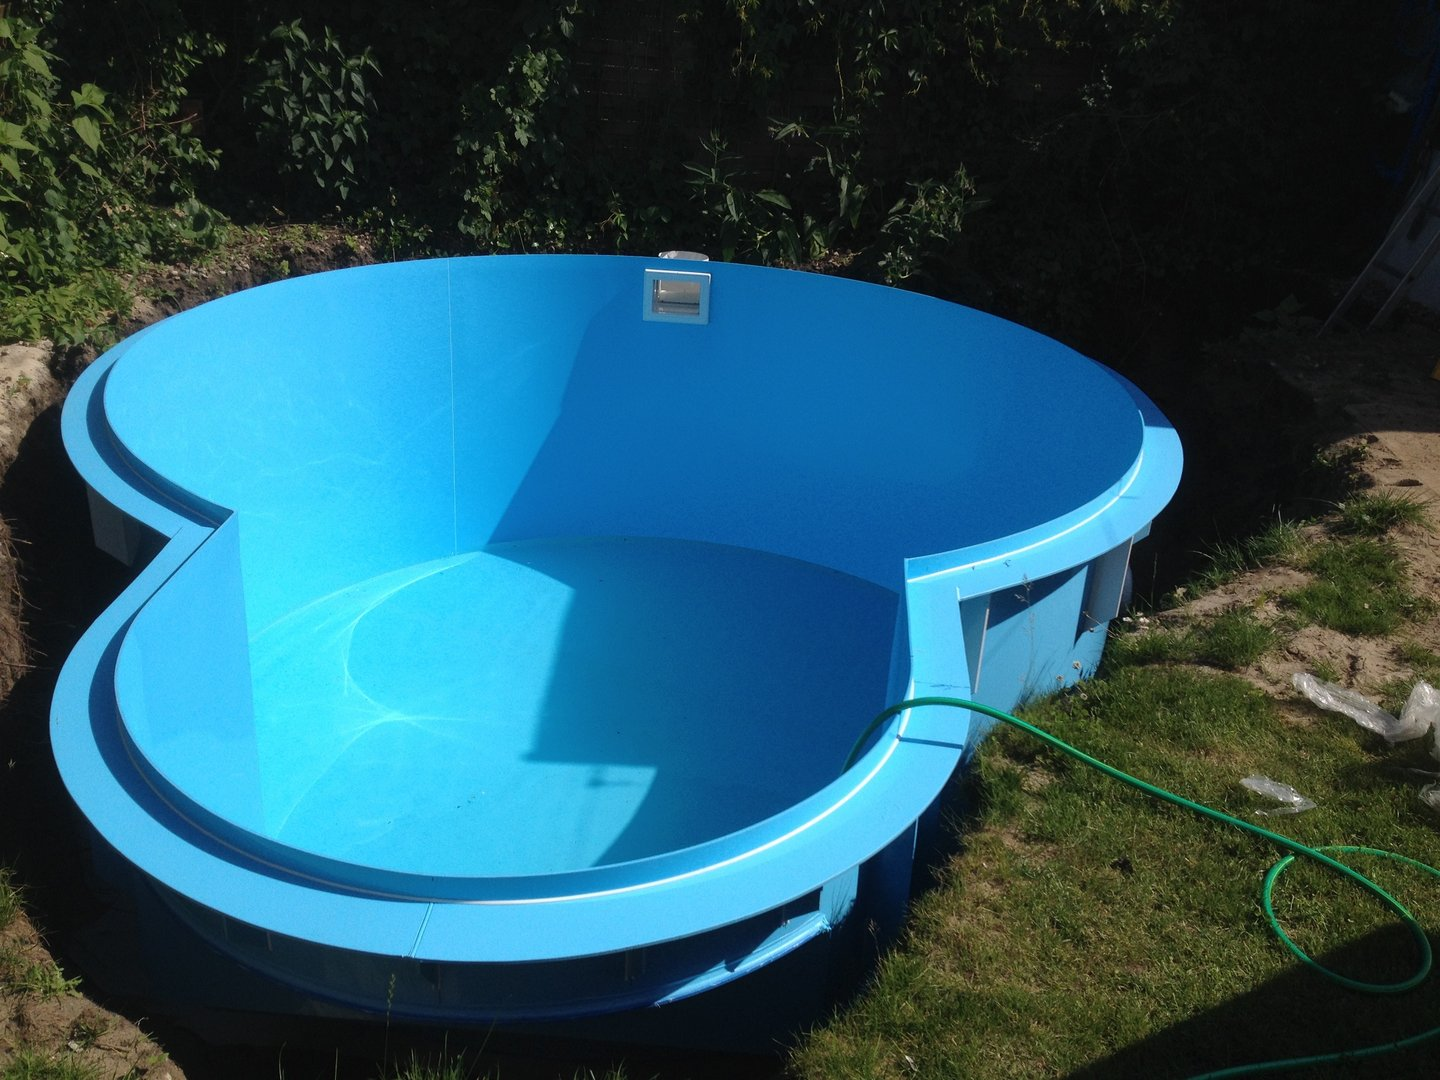 Pool rund 4 m top poolfolie x m x mm innenhlle for Ersatzfolie pool rund